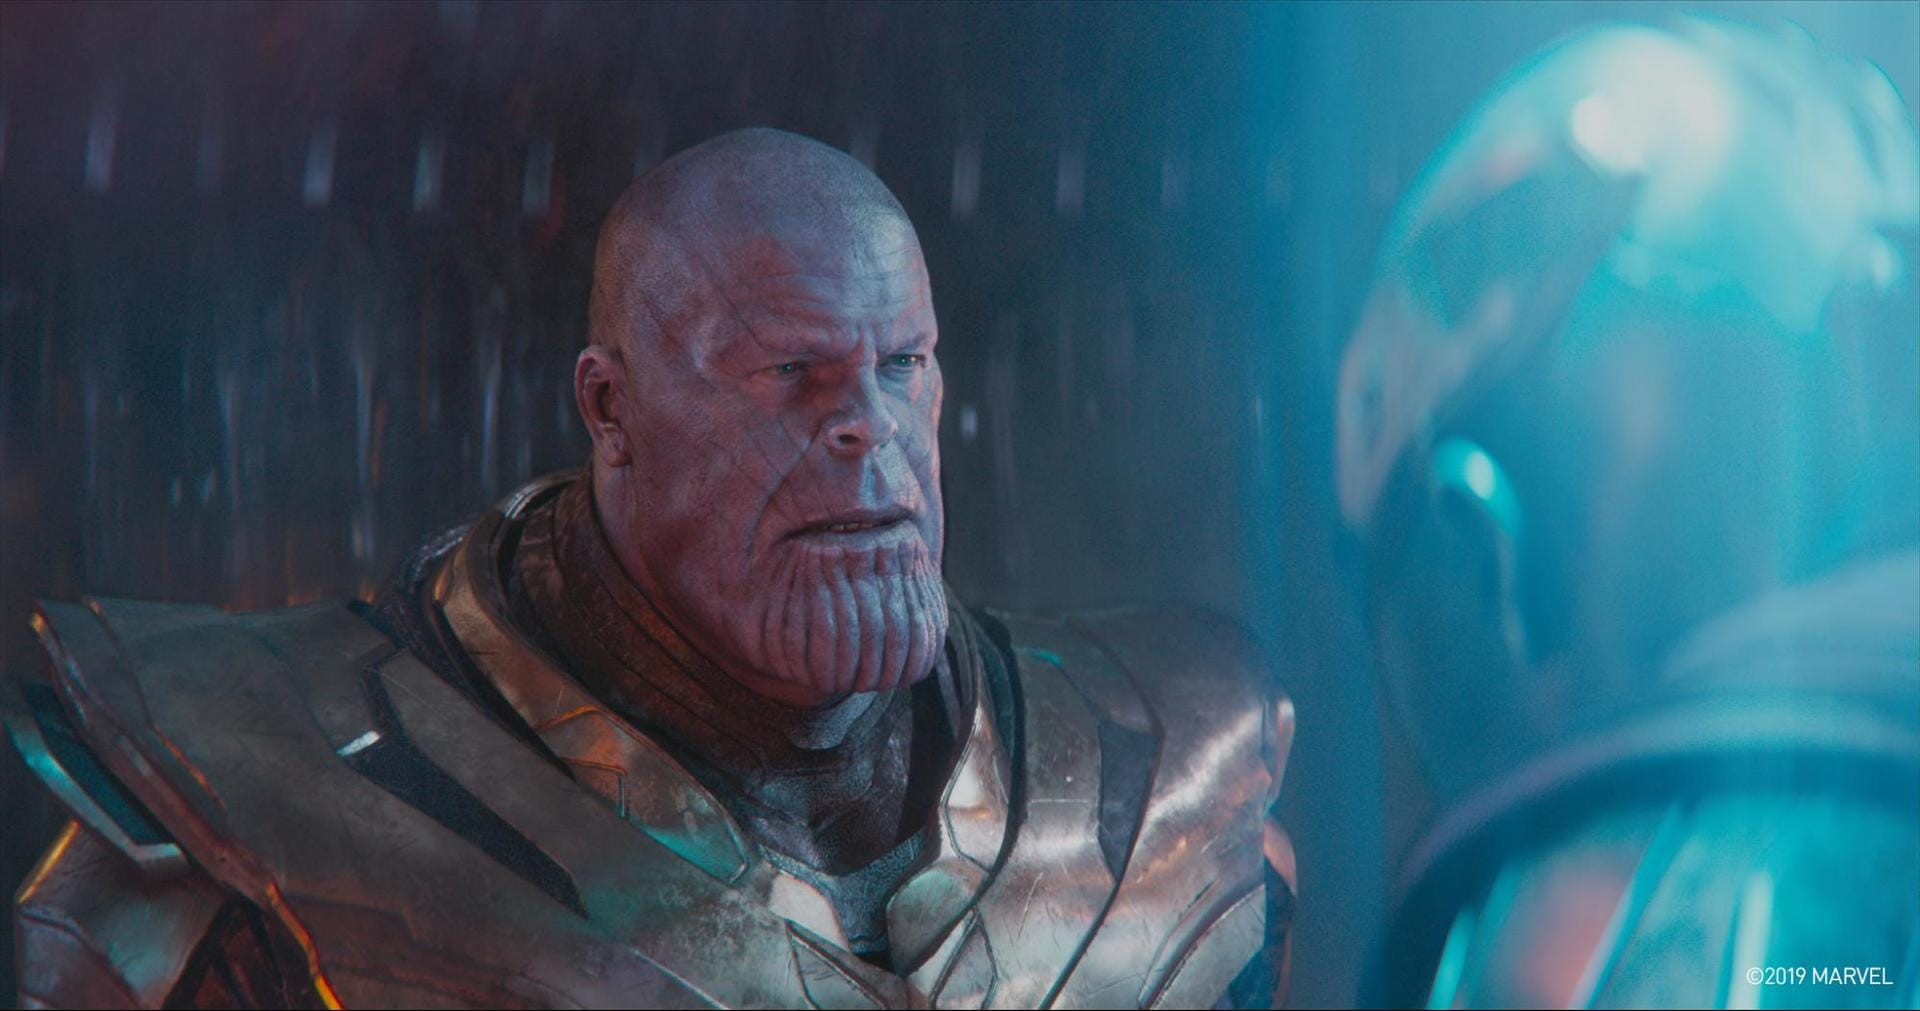 How they made a better CGI Thanos for Avengers: Endgame